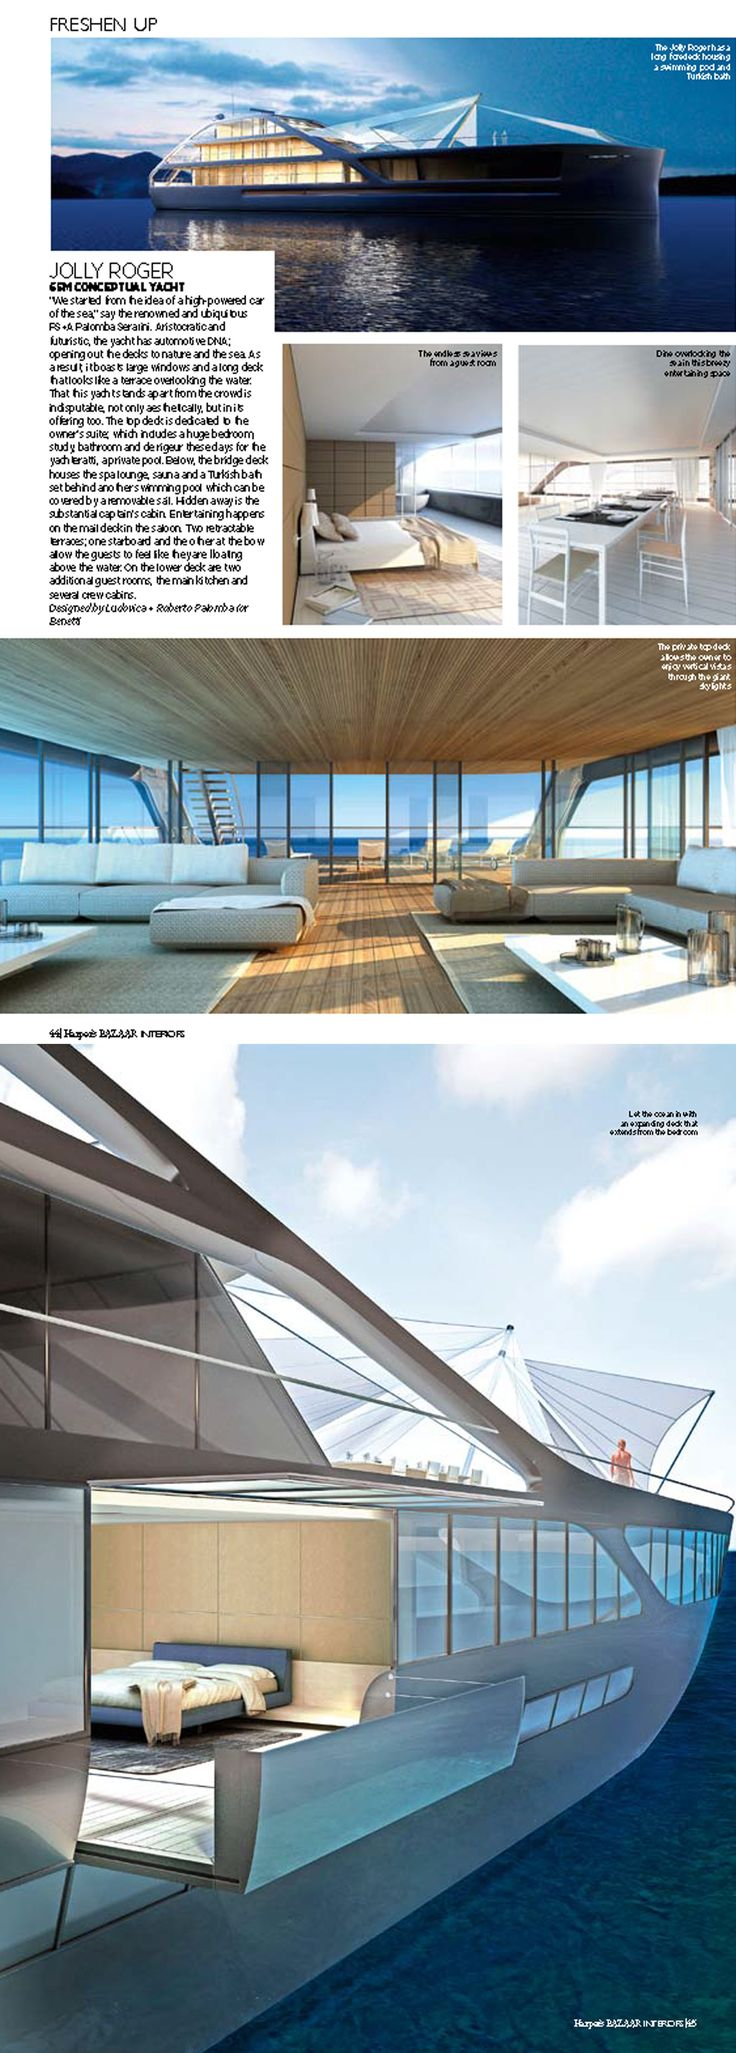 17 Best Images About Lu0027amage Luxury Superyacht On Pinterest, Möbel